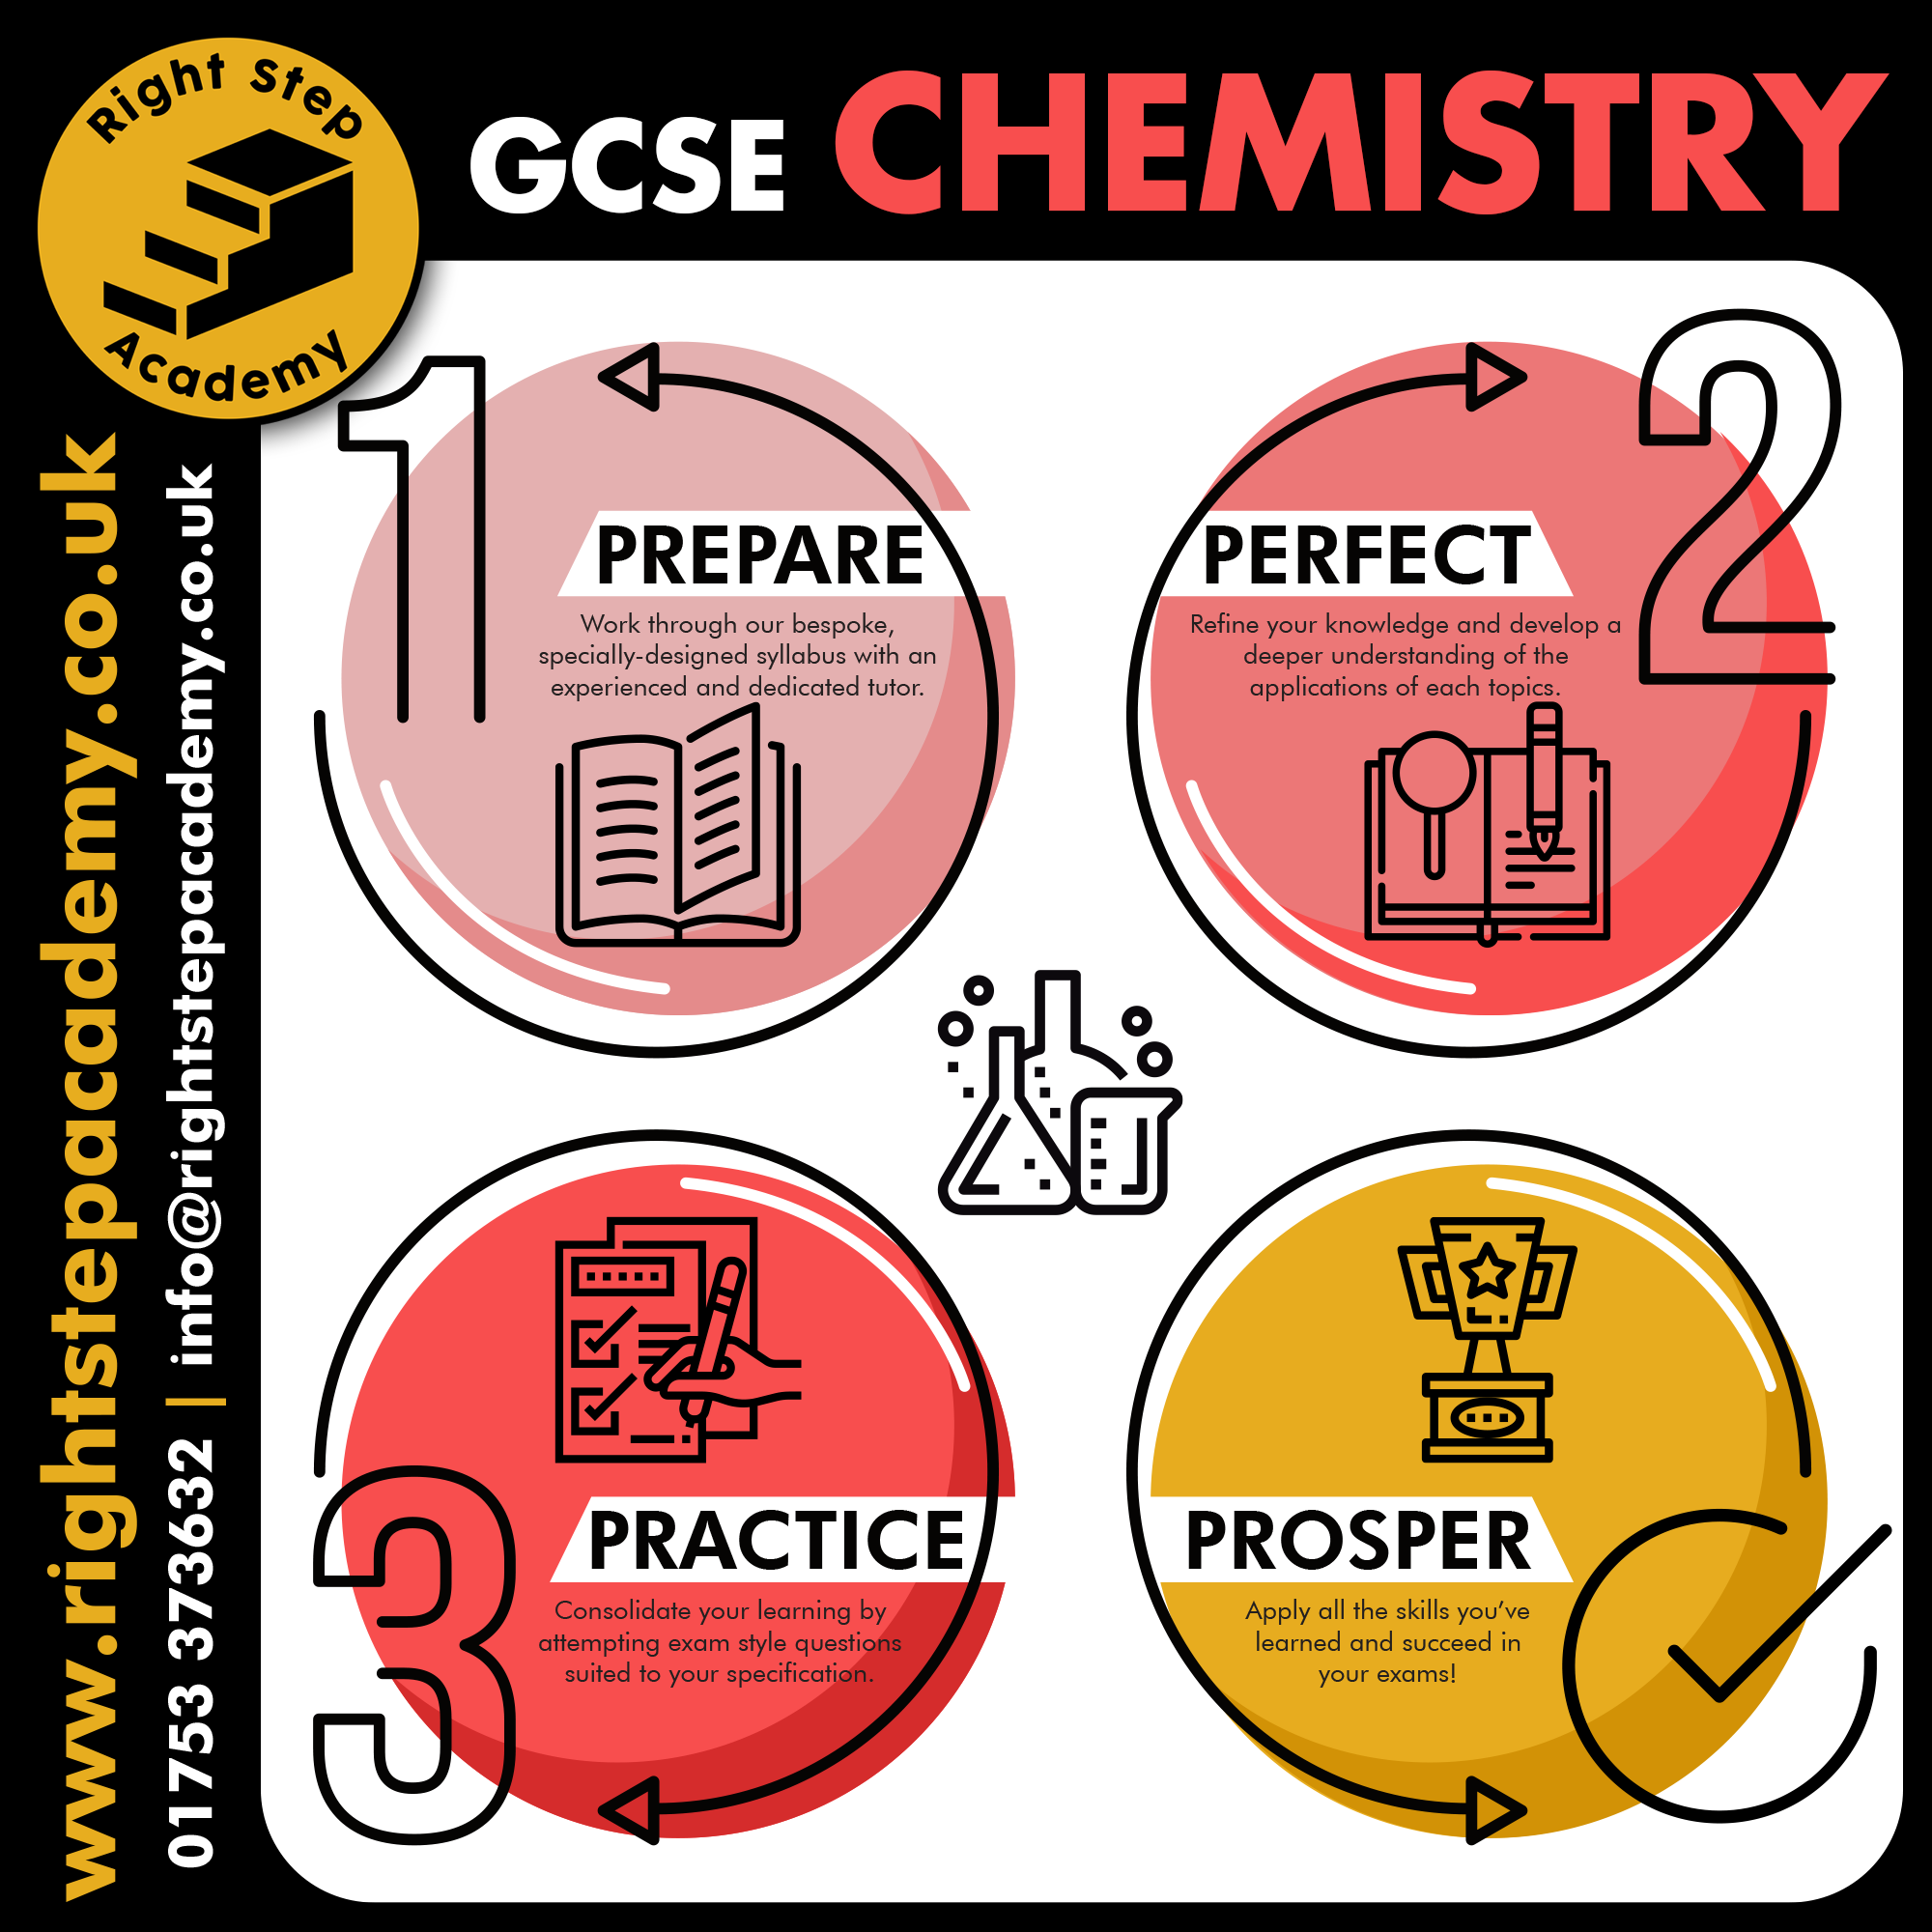 Our Process - At Right Step Academy, we follow a simple 3-step process for GCSE Chemistry tuition:1) All students work through our uniquely created Chemistry syllabus which covers each topic across the entire GCSE specification. Our course notes consist of eight packs:• Atomic Structure, the Periodic Table & Mixtures• Bonding, Structure & the Properties of Matter• Energy• Quantitative Chemistry• Reactions• Organic Chemistry• Analytical Chemistry• Chemistry in the WorldEach pack aims to establish the foundations for the topic covered in a very straightforward way, before building upon that knowledge towards the more complex, higher-level concepts.By working through the packs in this manner, we are able to ensure that the course of study is accessible, as well as personalised, for each student.2) The student revisits each individual topic using the exam board issued specification, textbooks and other learning material to fill in any gaps in their knowledge.3) To consolidate their learning and prepare for the examinations themselves, students will work through our extensive question bank, curated by our specialist content developers. With this regular question practice under timed conditions, as well as several mock assessment dates scheduled throughout the year, students will become thoroughly primed for success in their exam.